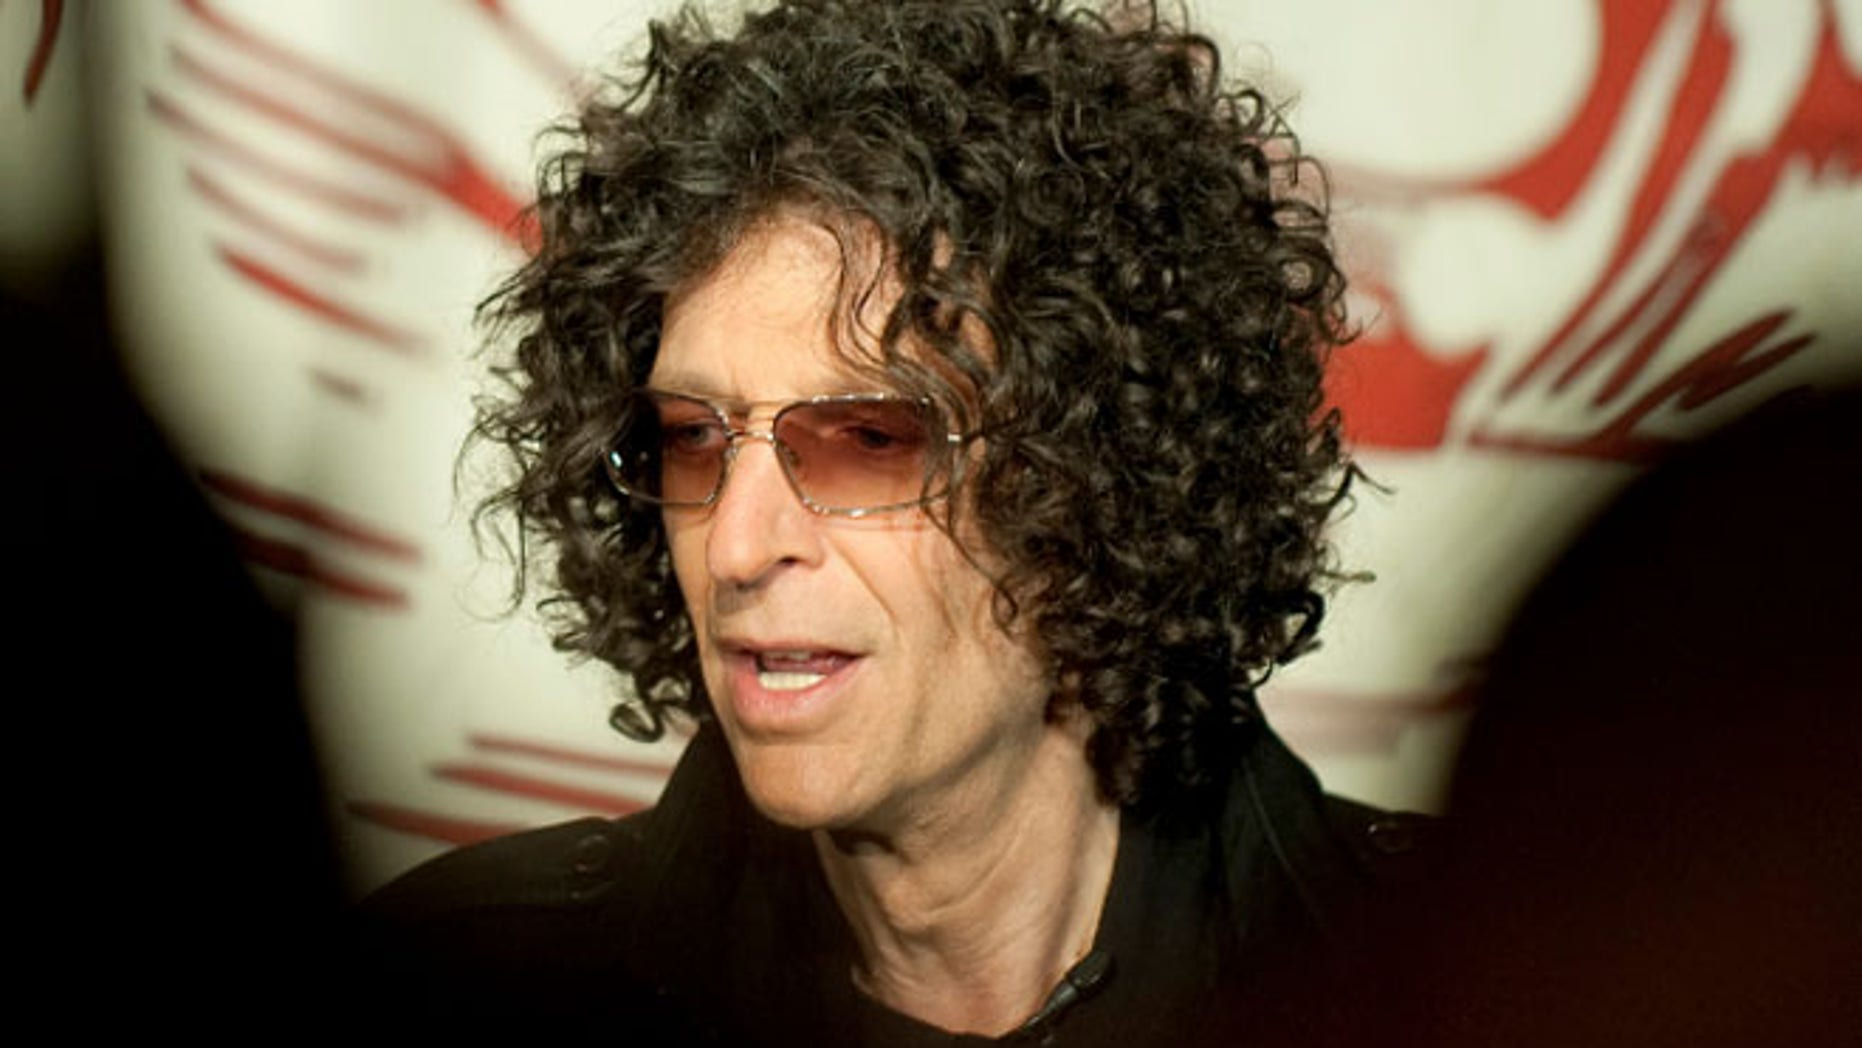 FILE: President Trump has been on Howard Stern's radio show dozens of times.